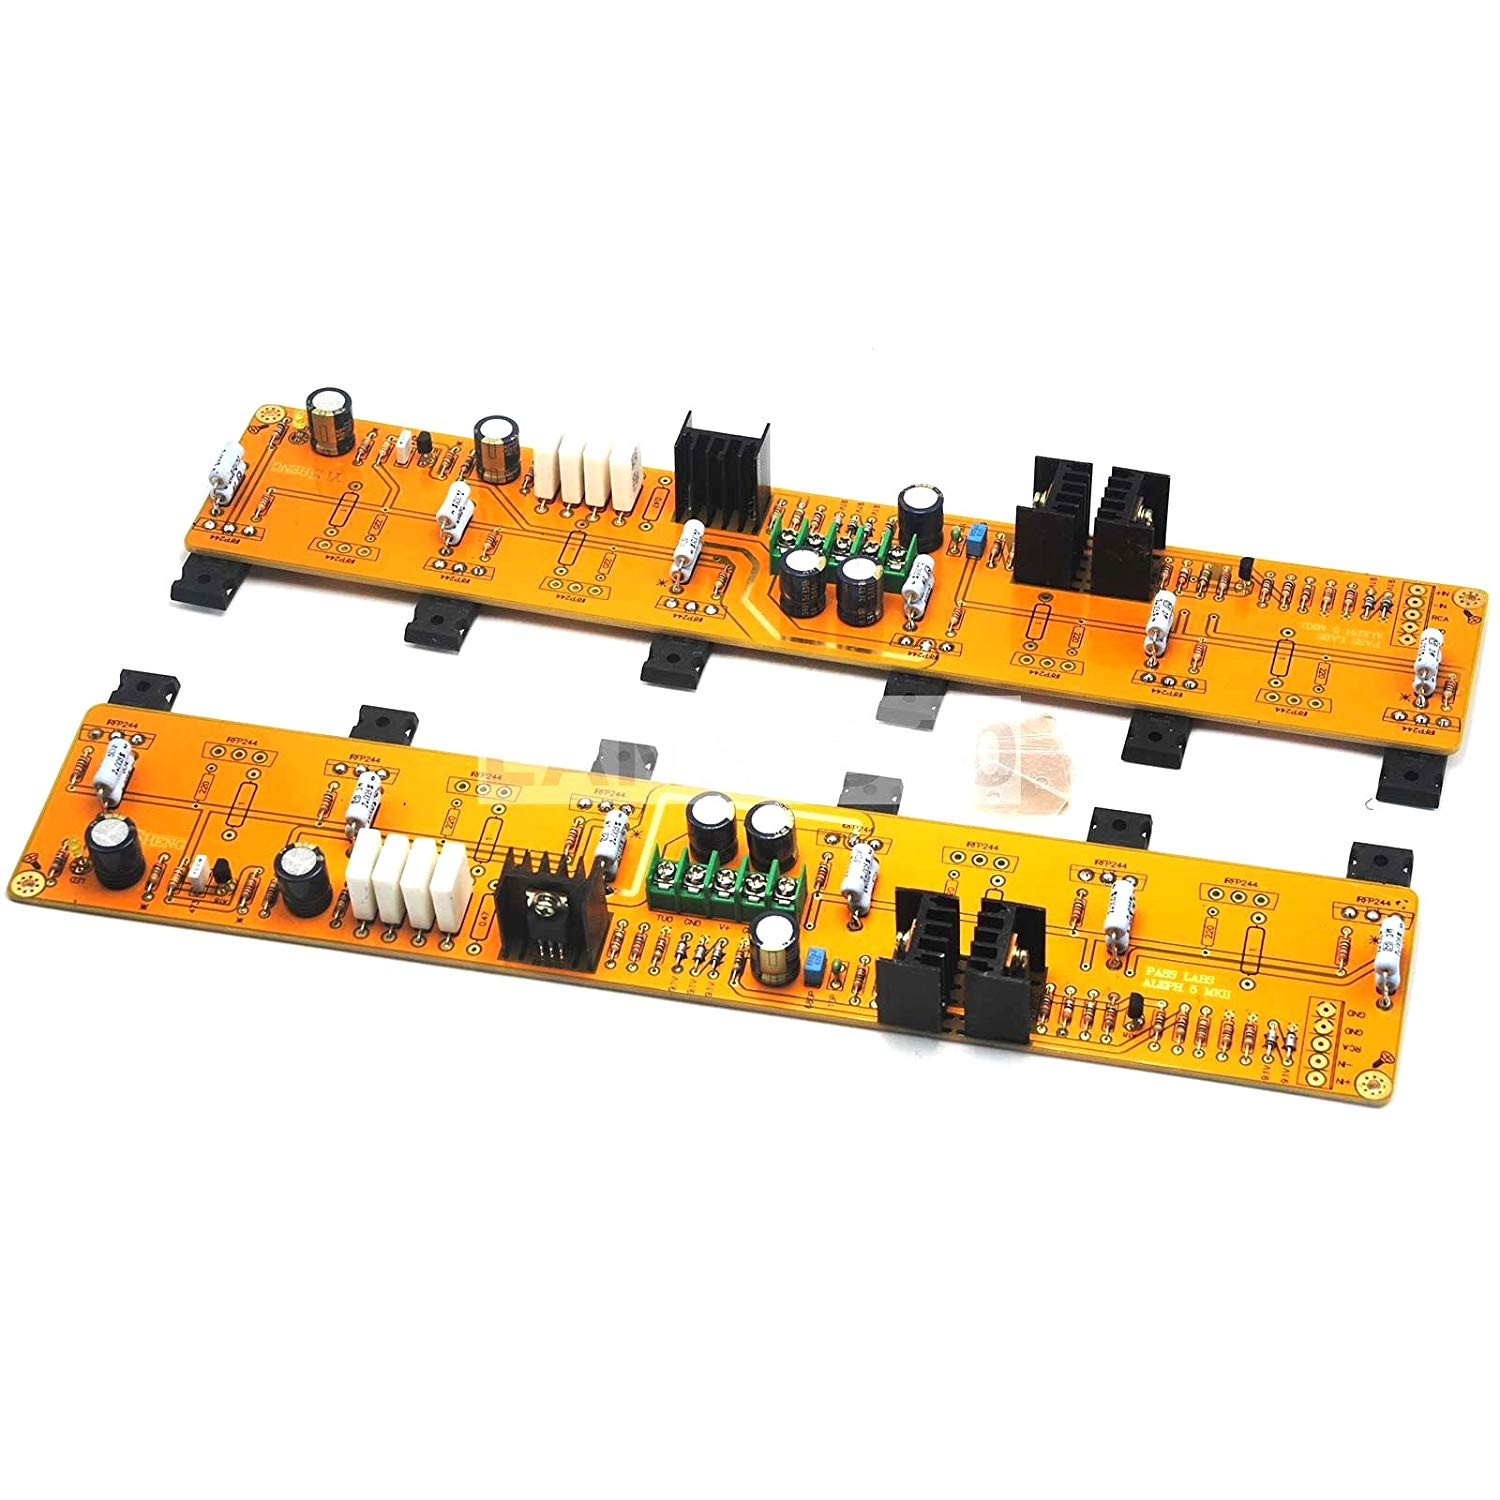 2PASS A5 HIFI Amplifier board IRF244 IRF9610 60W+60W DC35V Class A single-ended